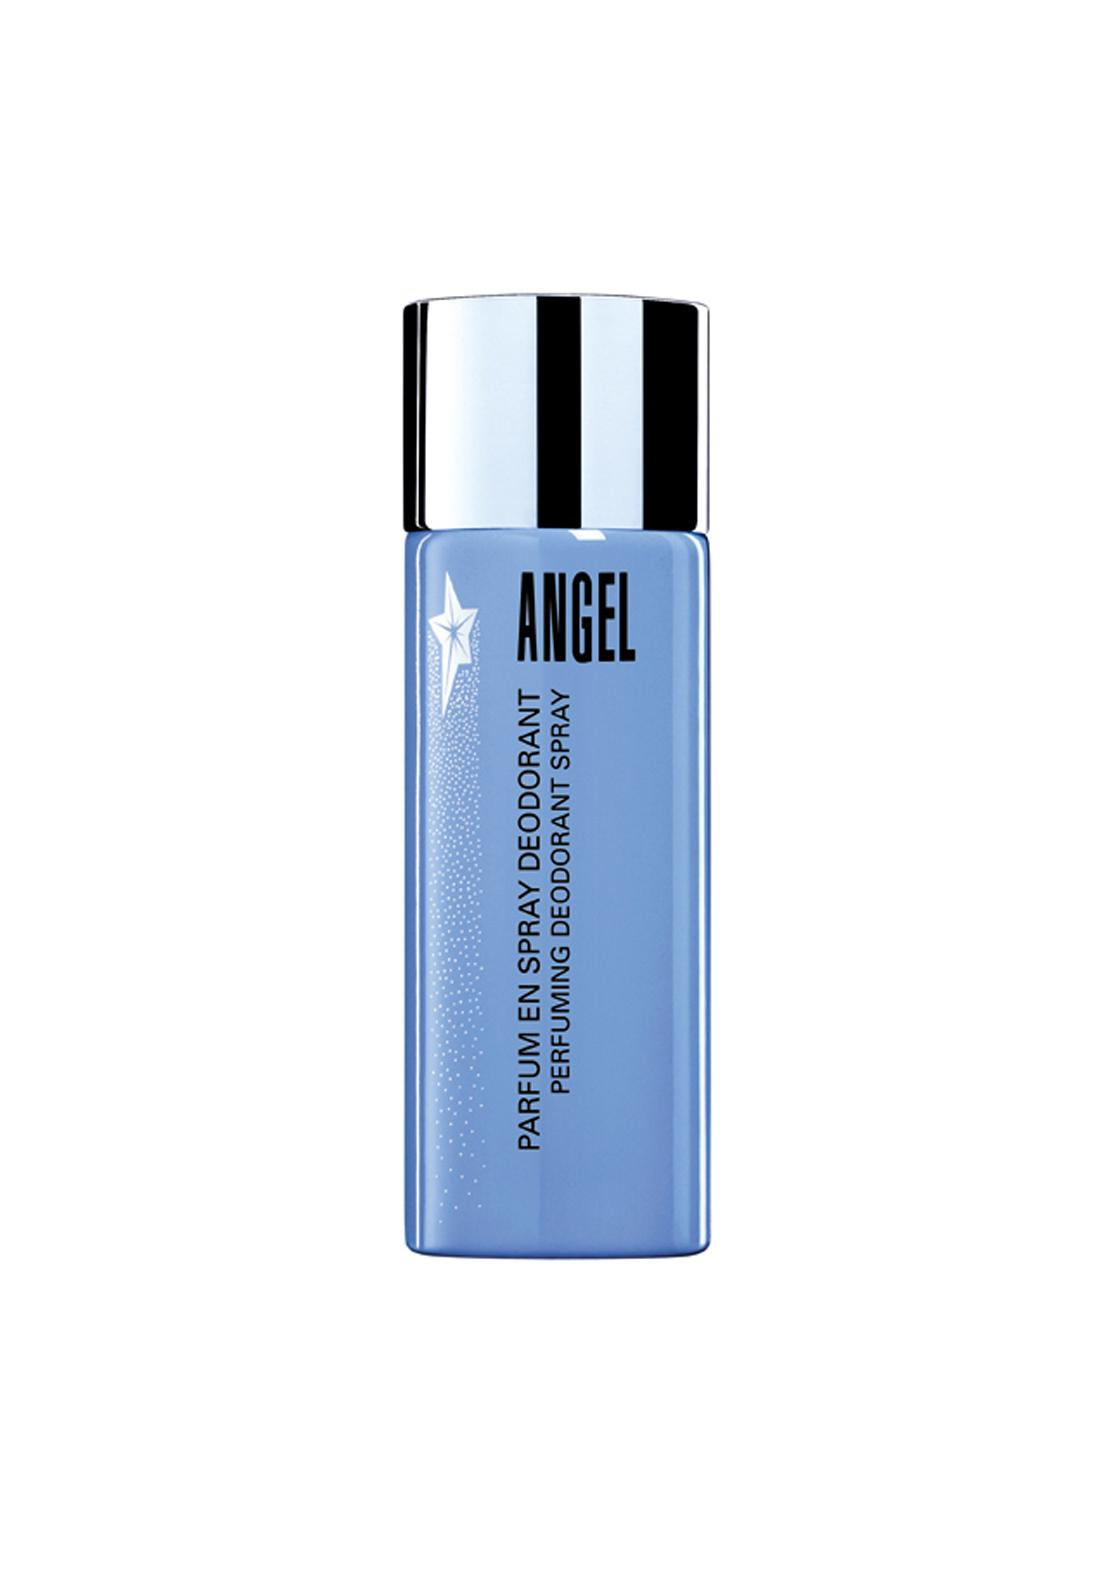 Thierry Mugler Angel Deodorant Spray, 100ml